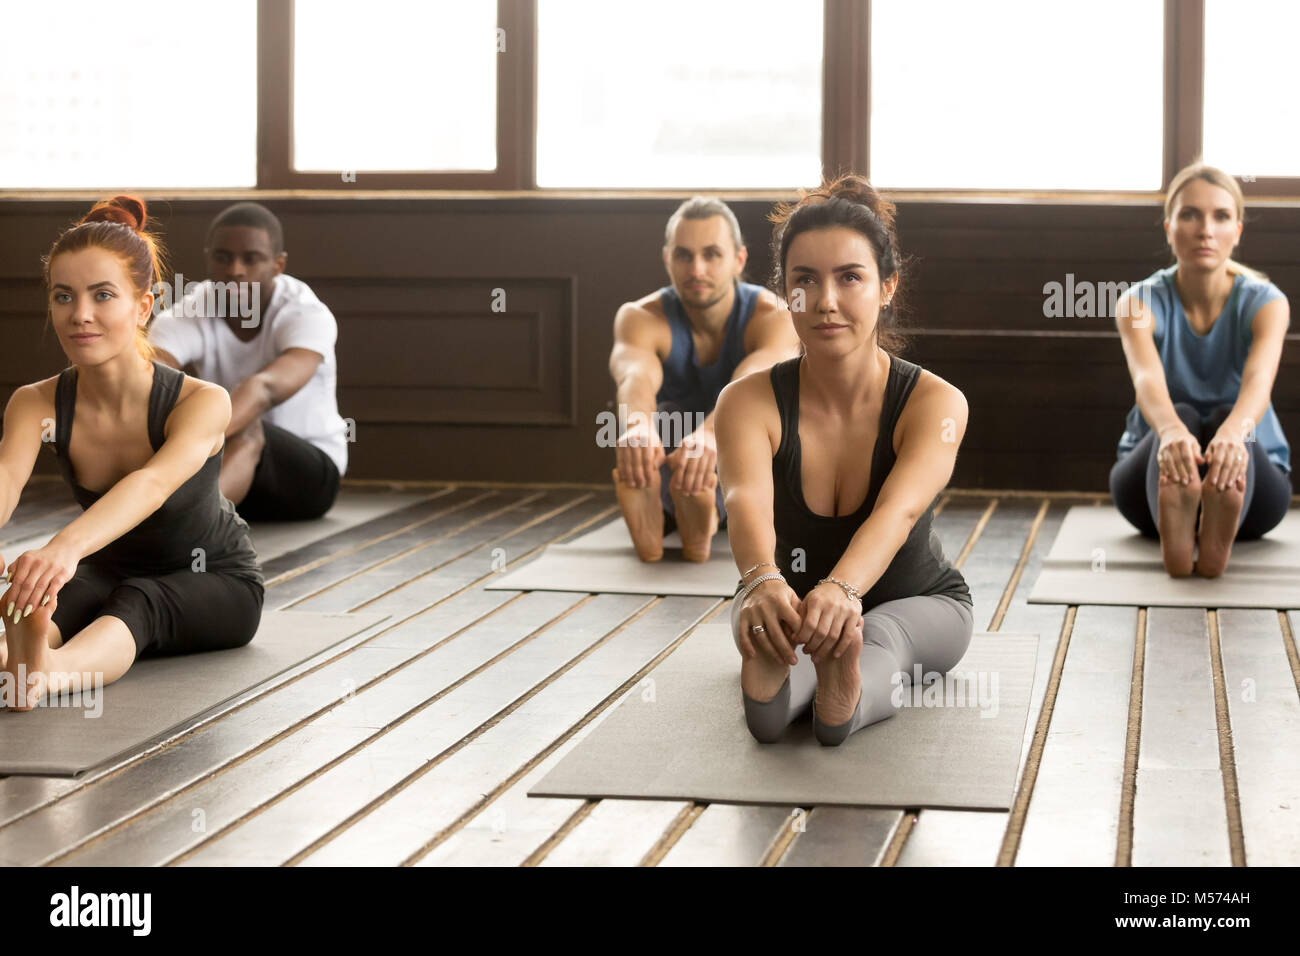 Group of sporty people in paschimottanasana exercise - Stock Image